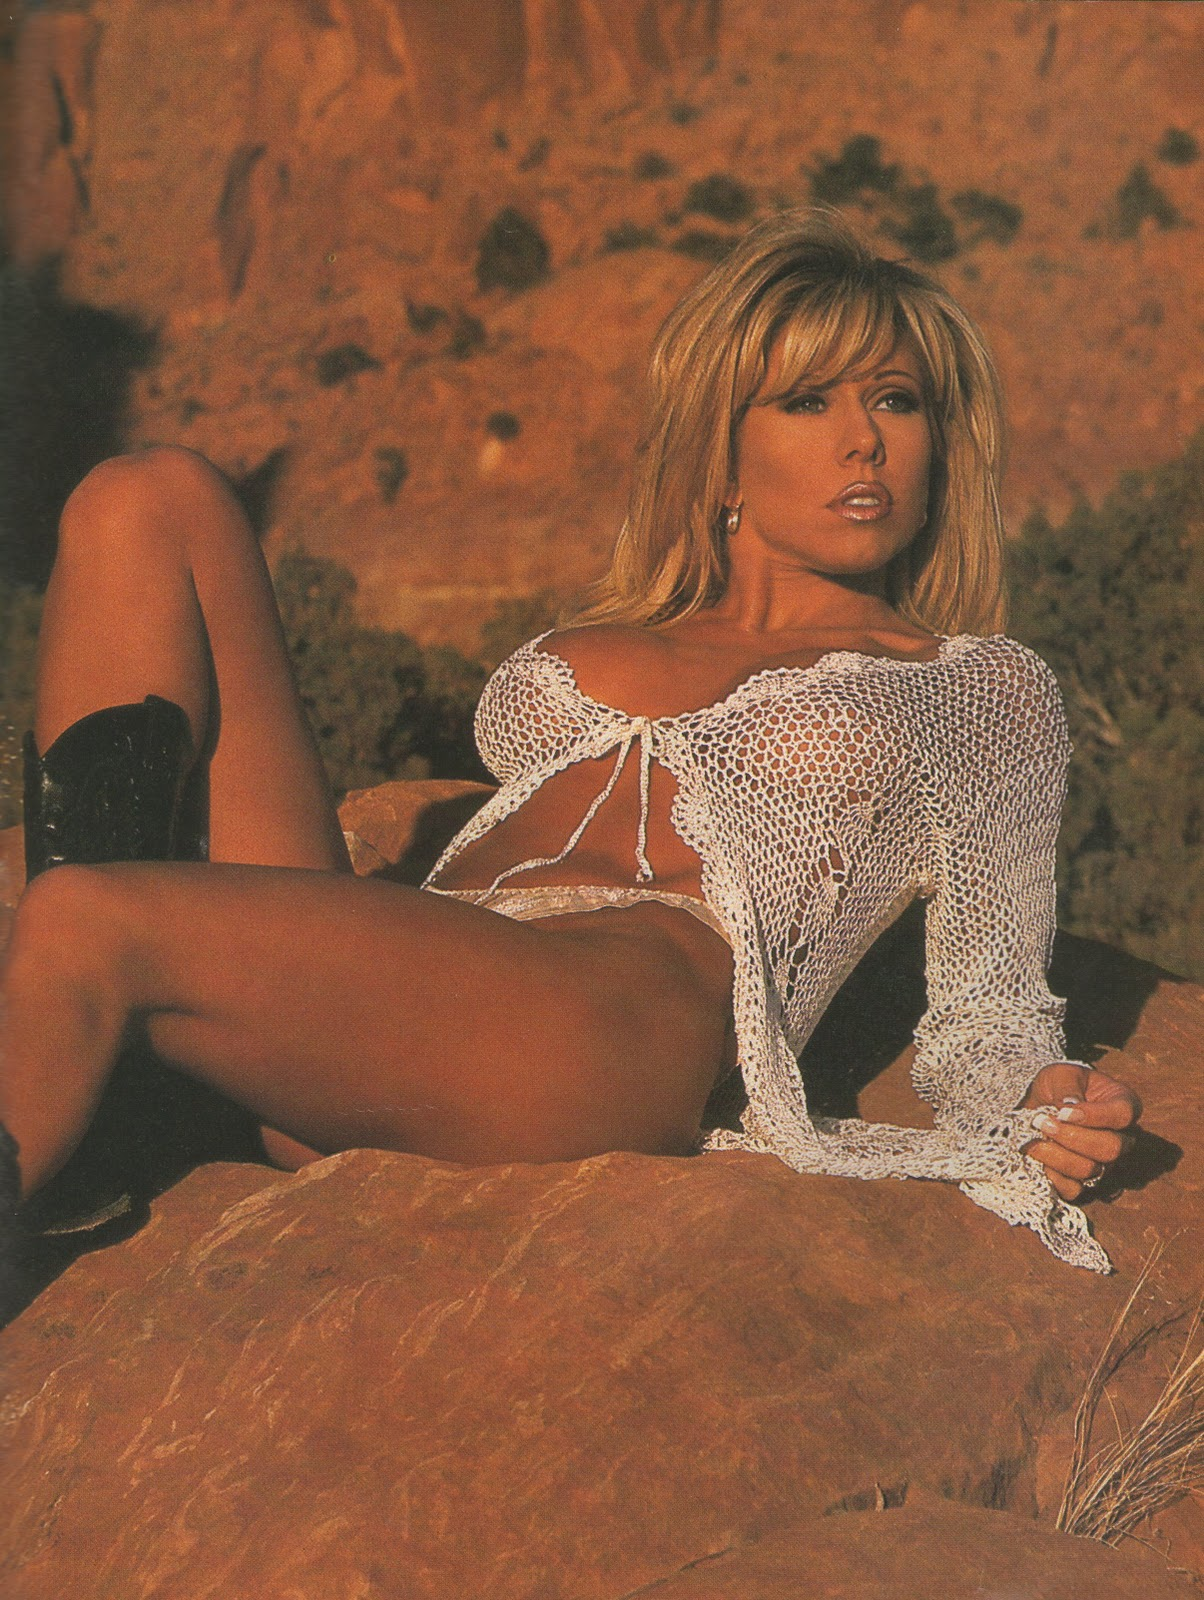 Terri runnels fucking porncraft babes